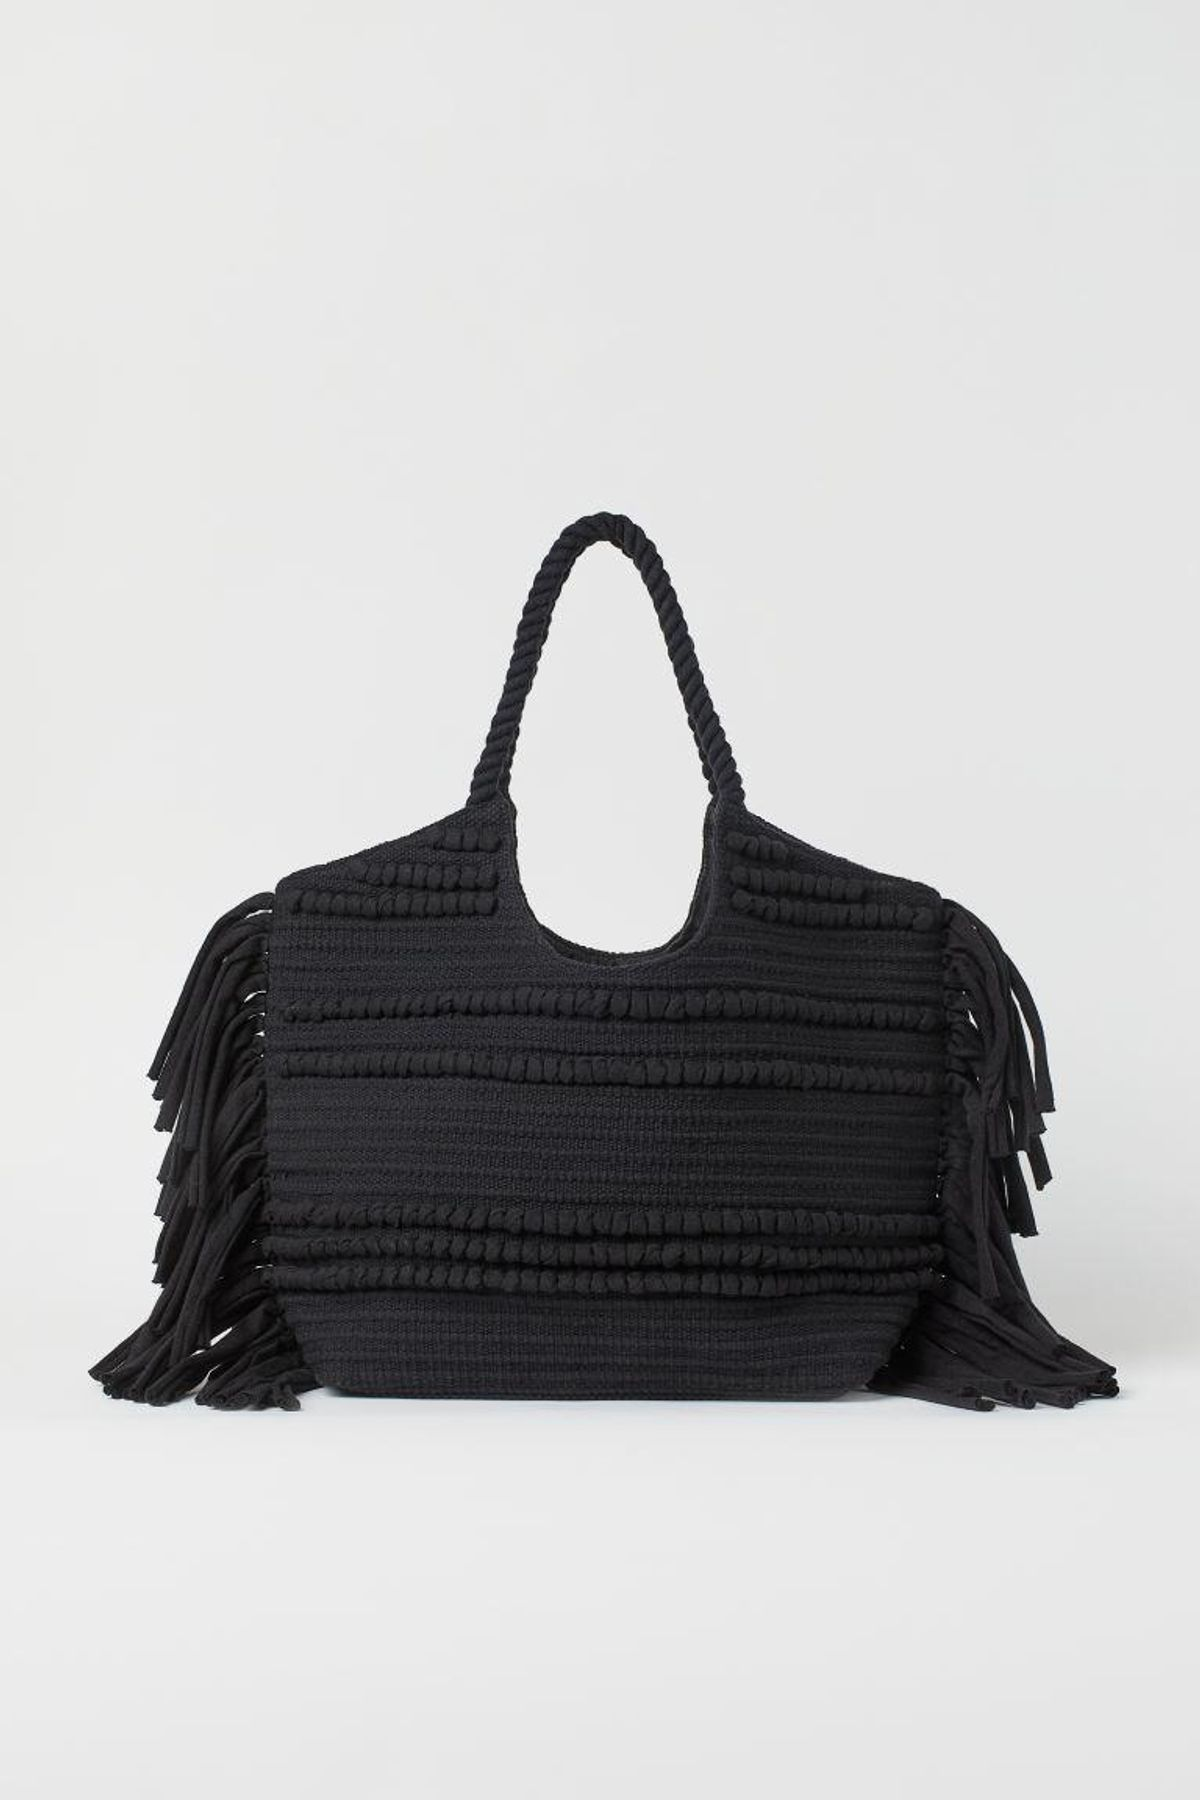 h and m fringed shopper